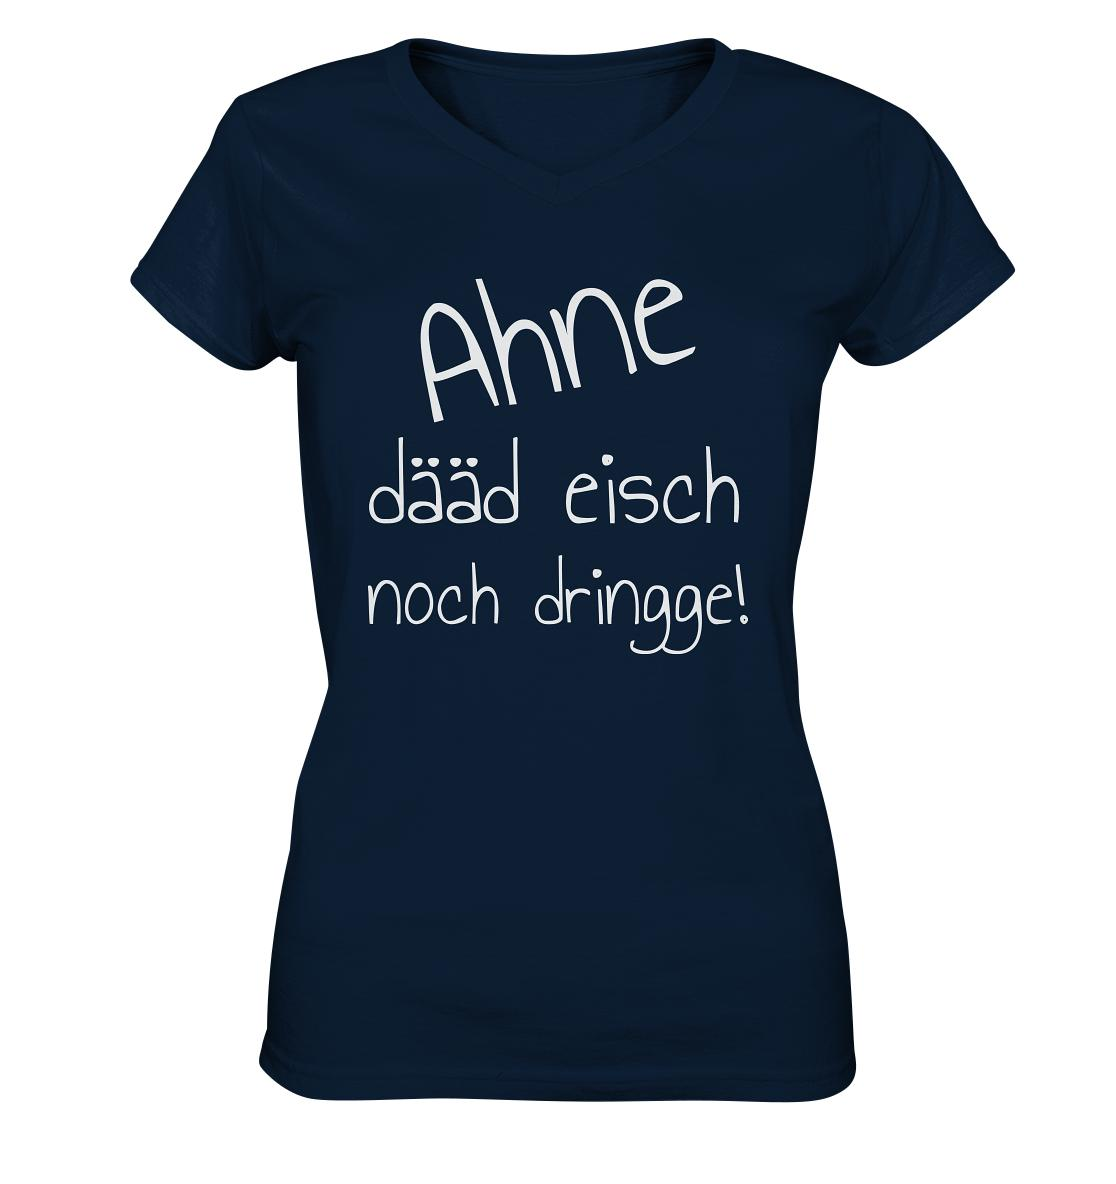 Ahne dääd eisch noch dringge! -Ladies V-Neck Shirt